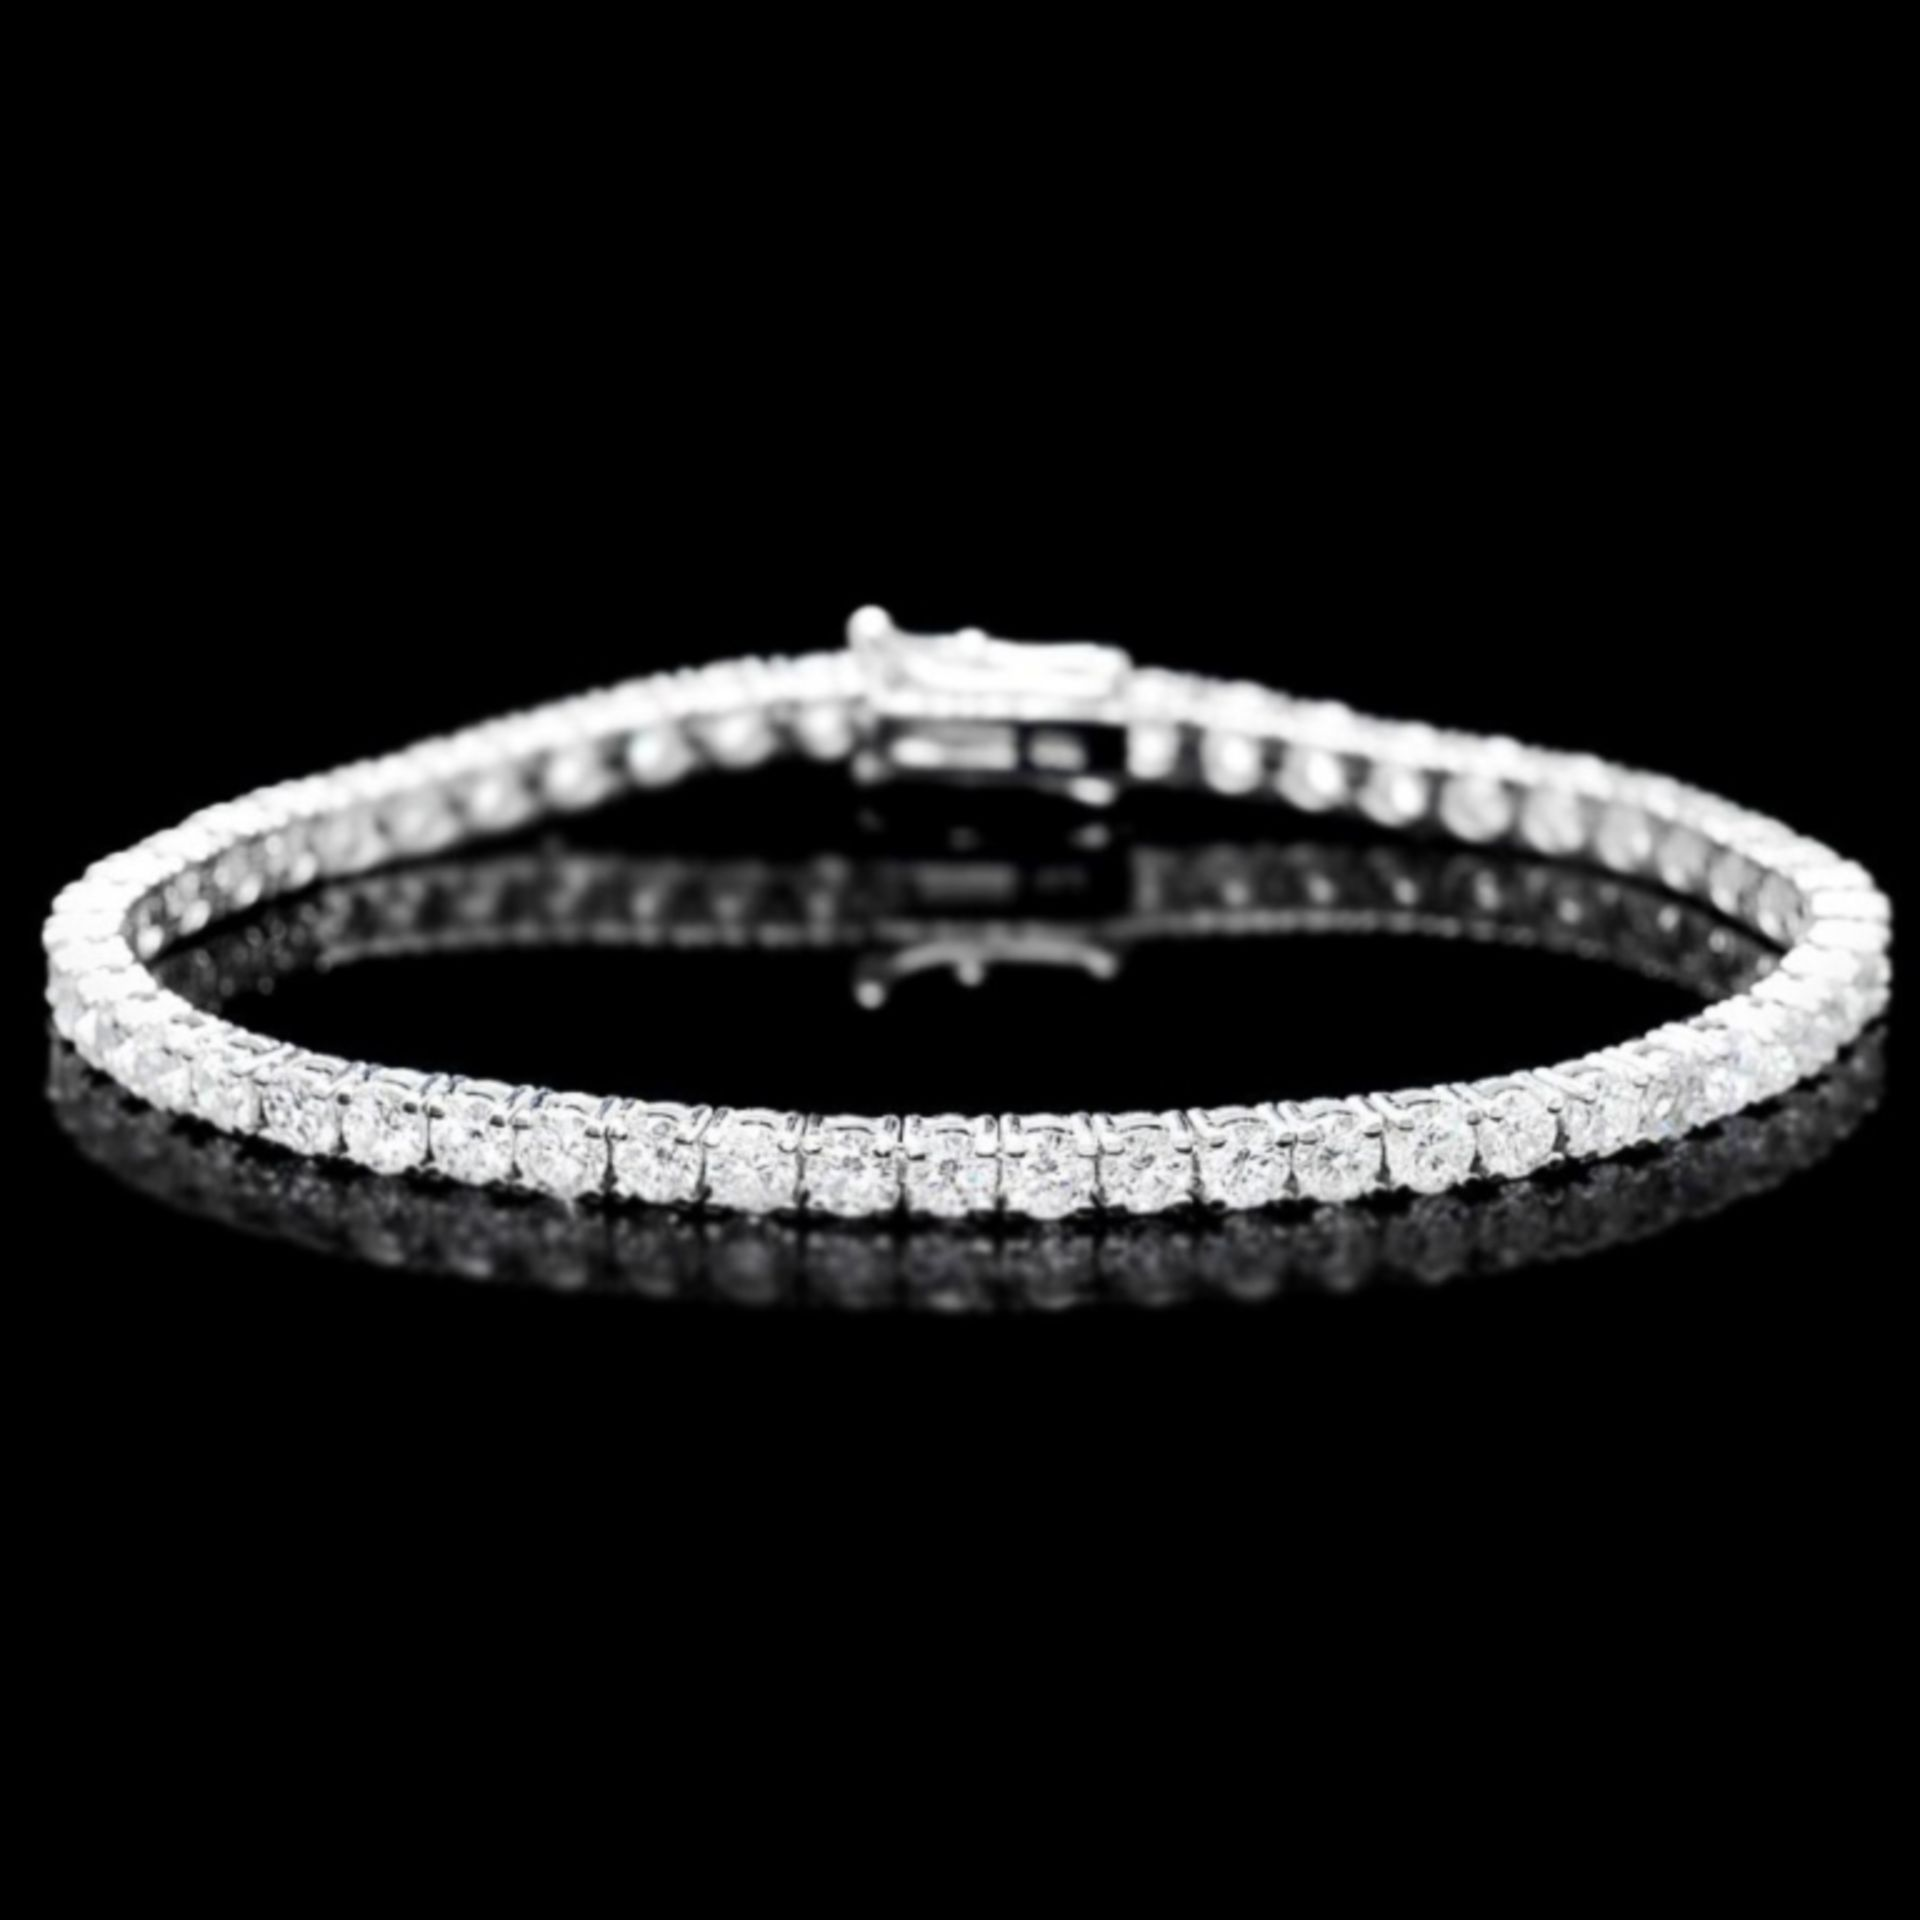 ^18k White Gold 7.45ct Diamond Bracelet